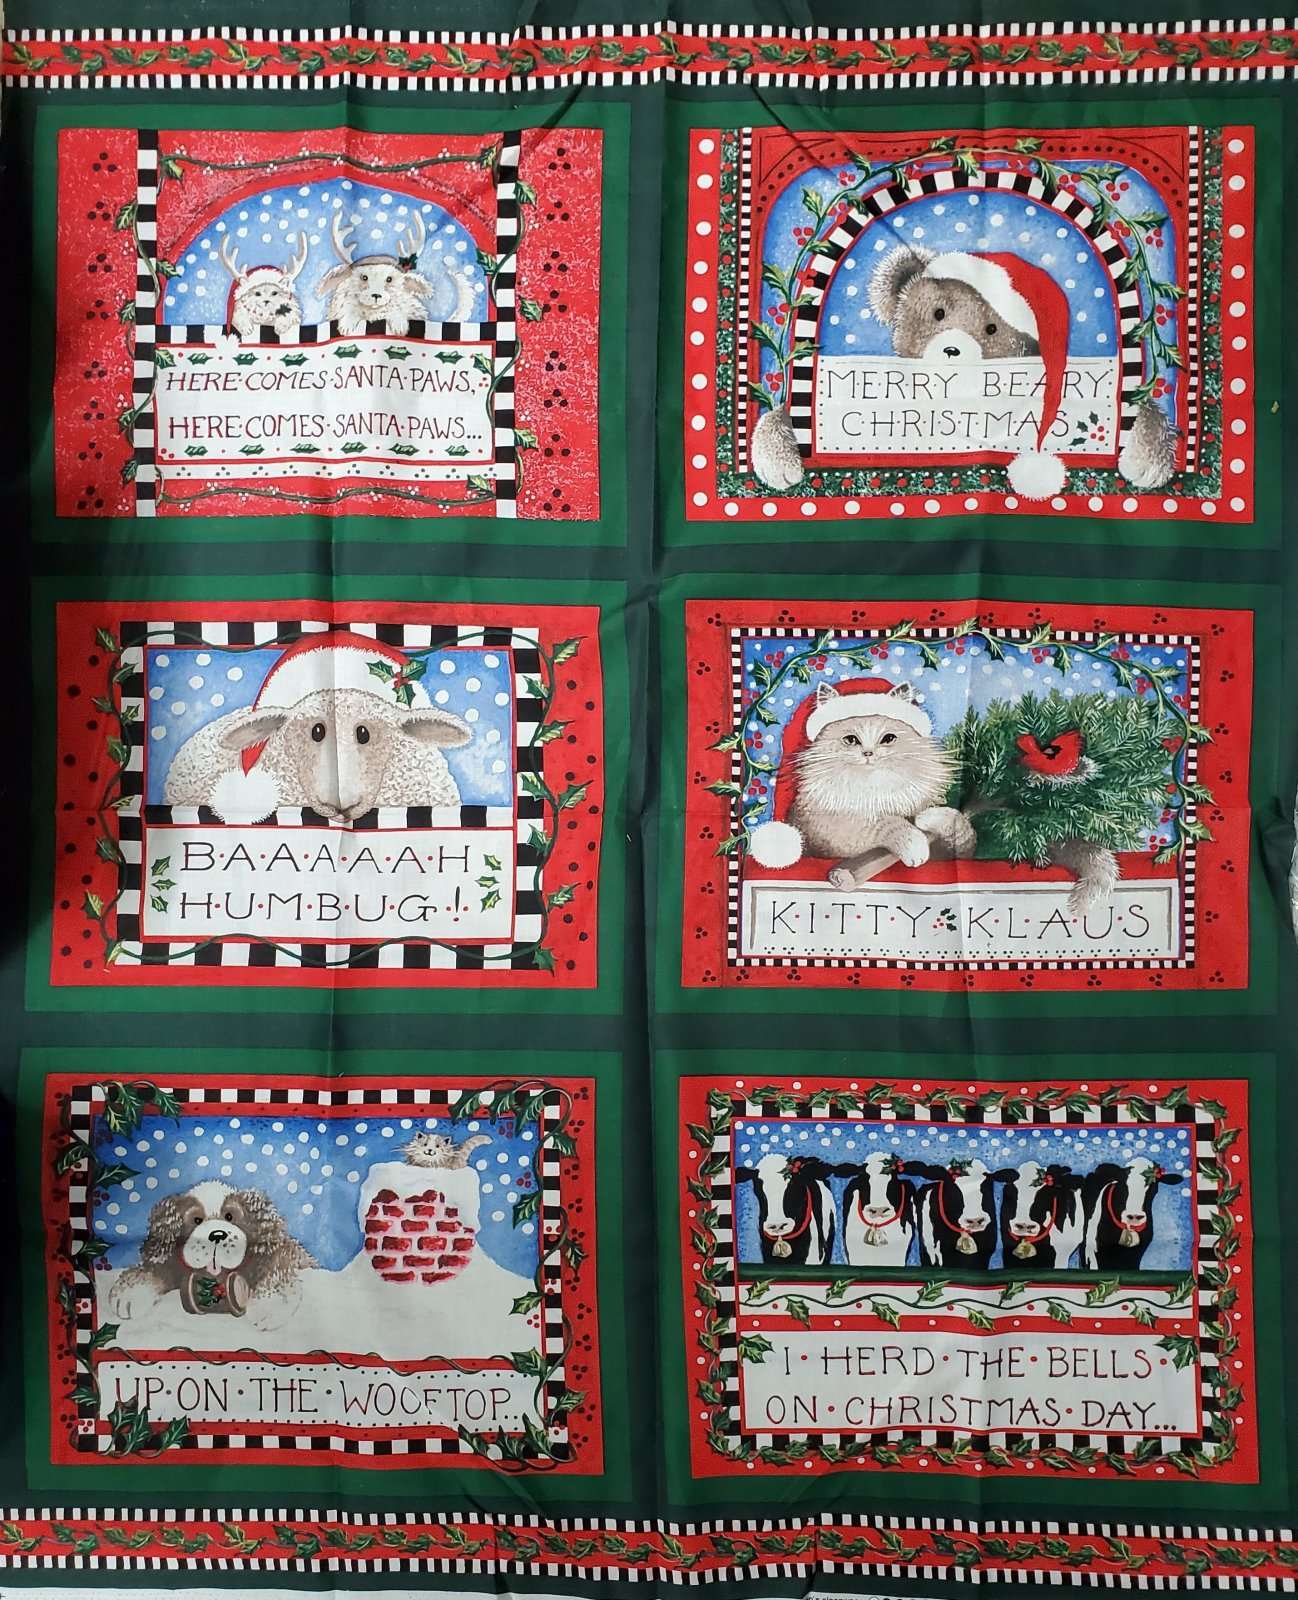 Baaah Humbug Pillow Panel designed by Linda Grayson for Concord Prints